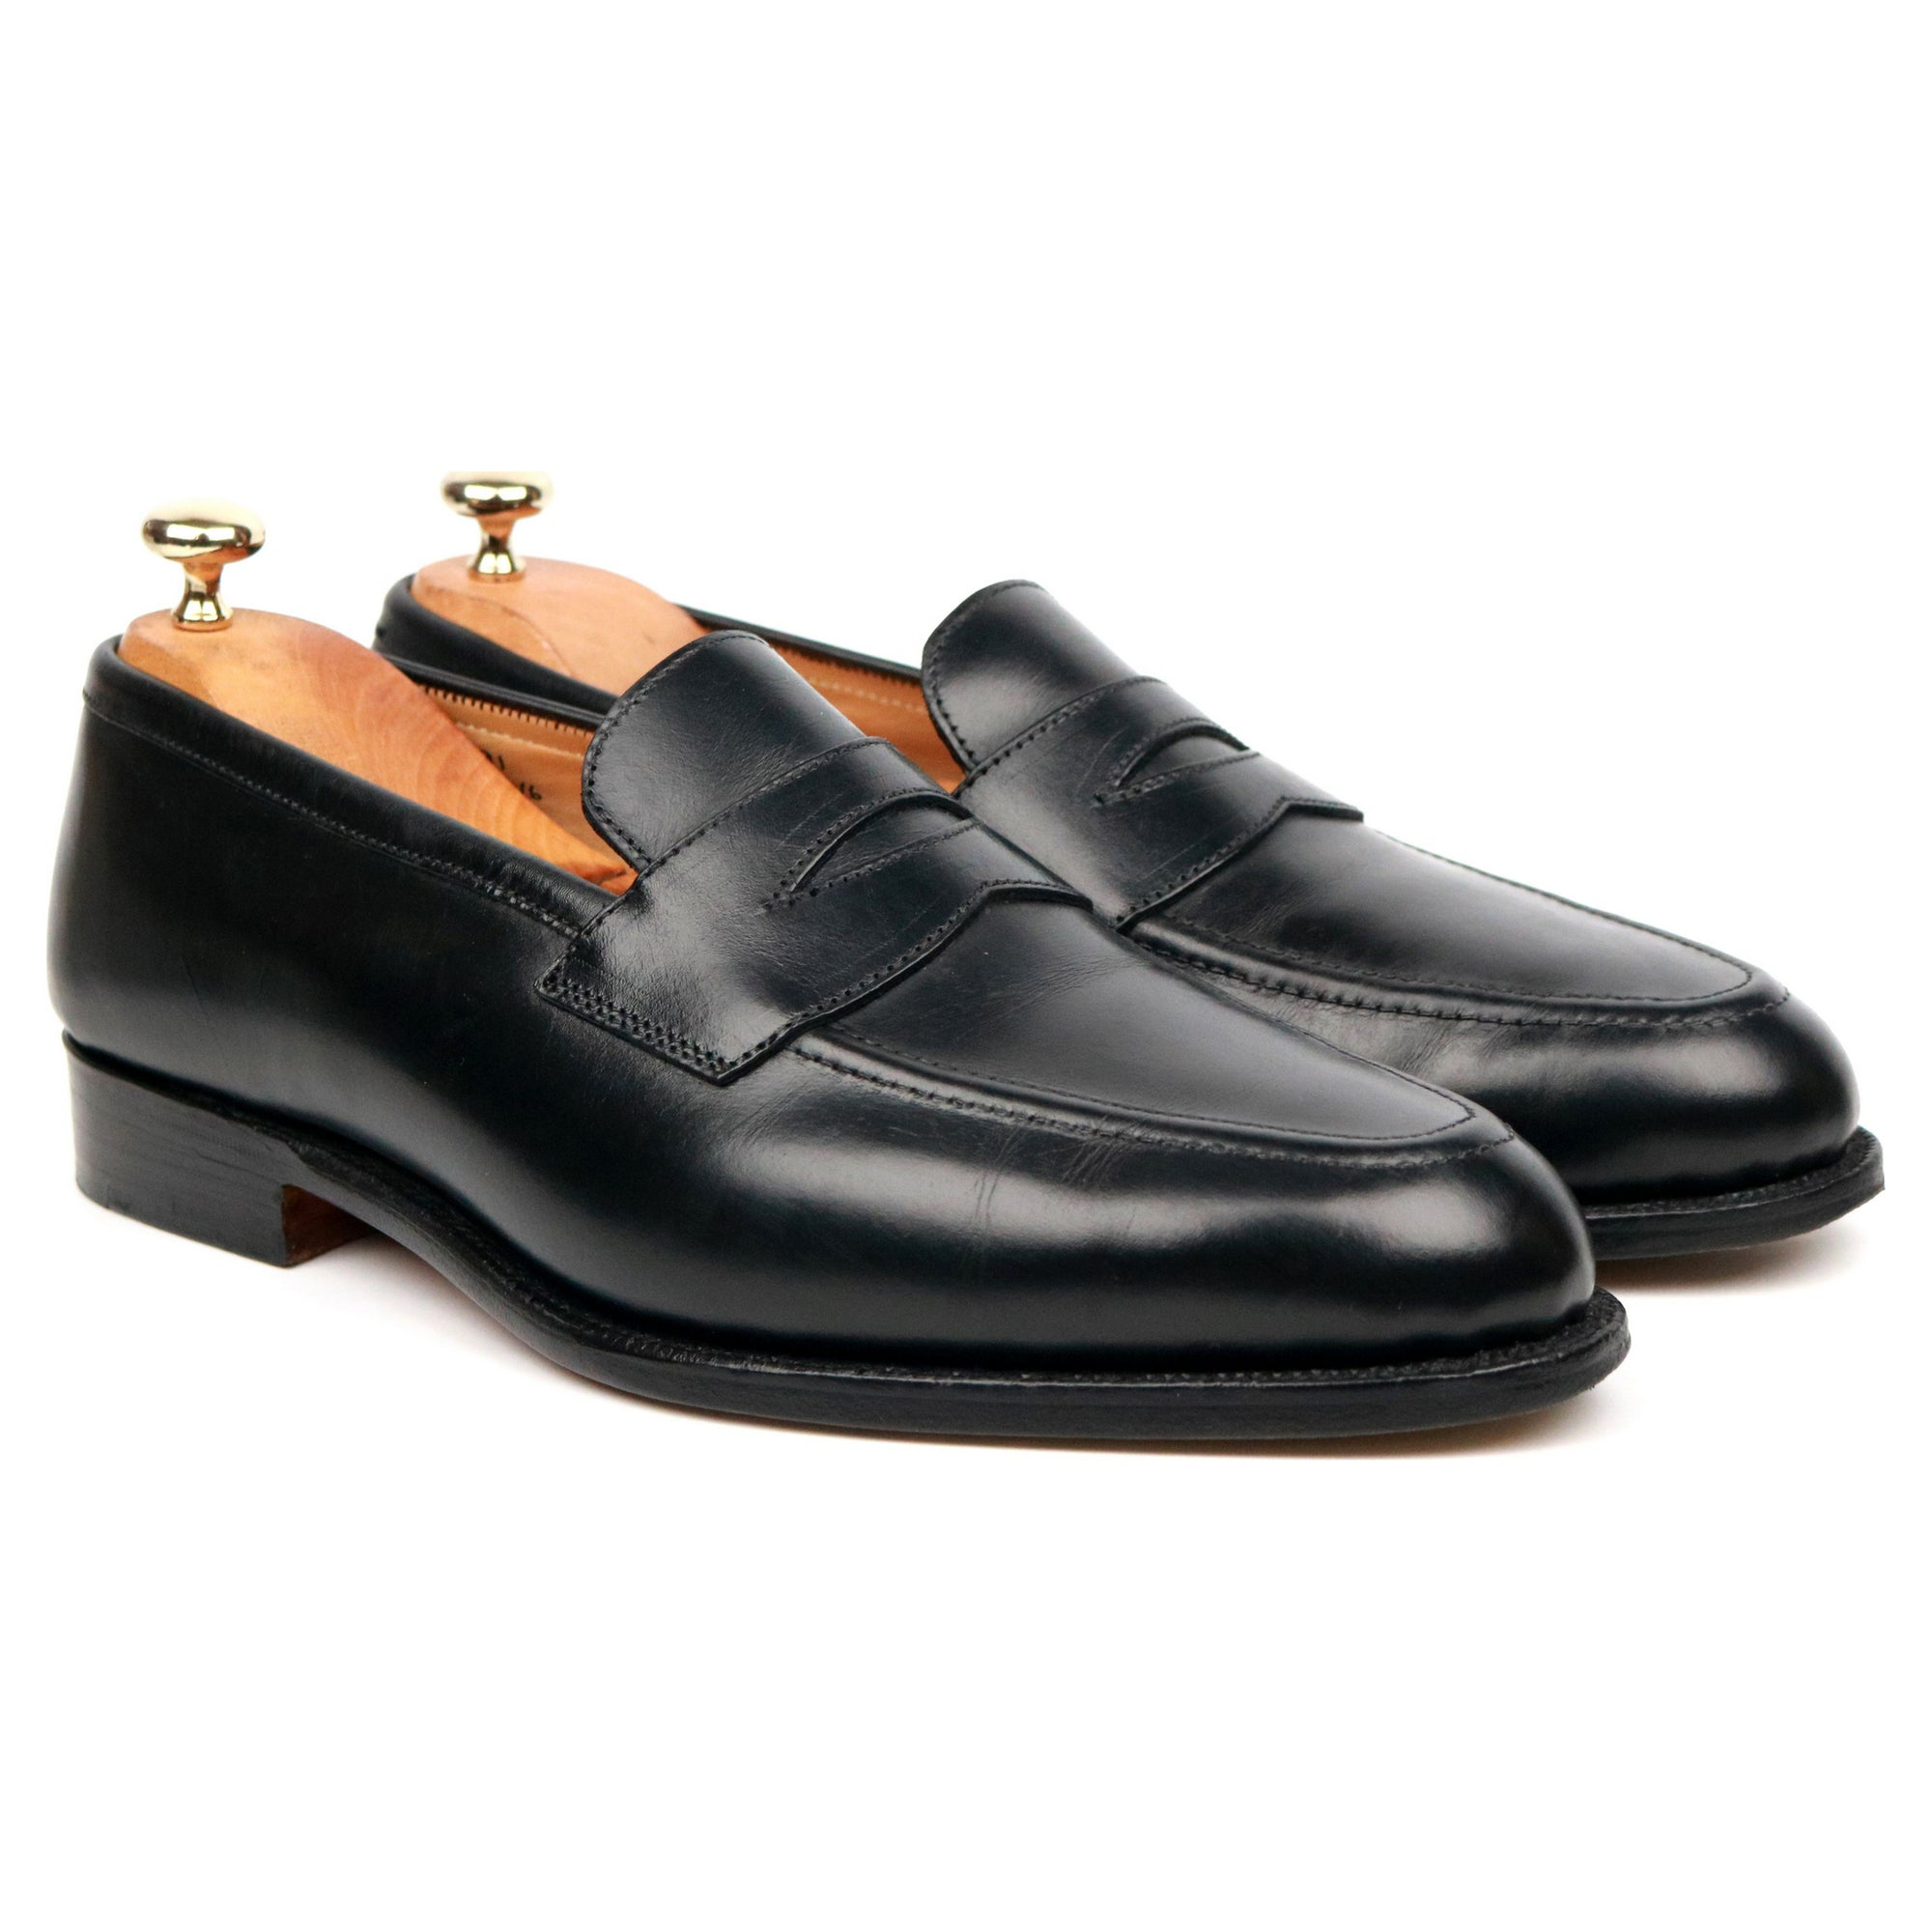 Tricker's 'Harvard' Black Leather Loafers UK 8